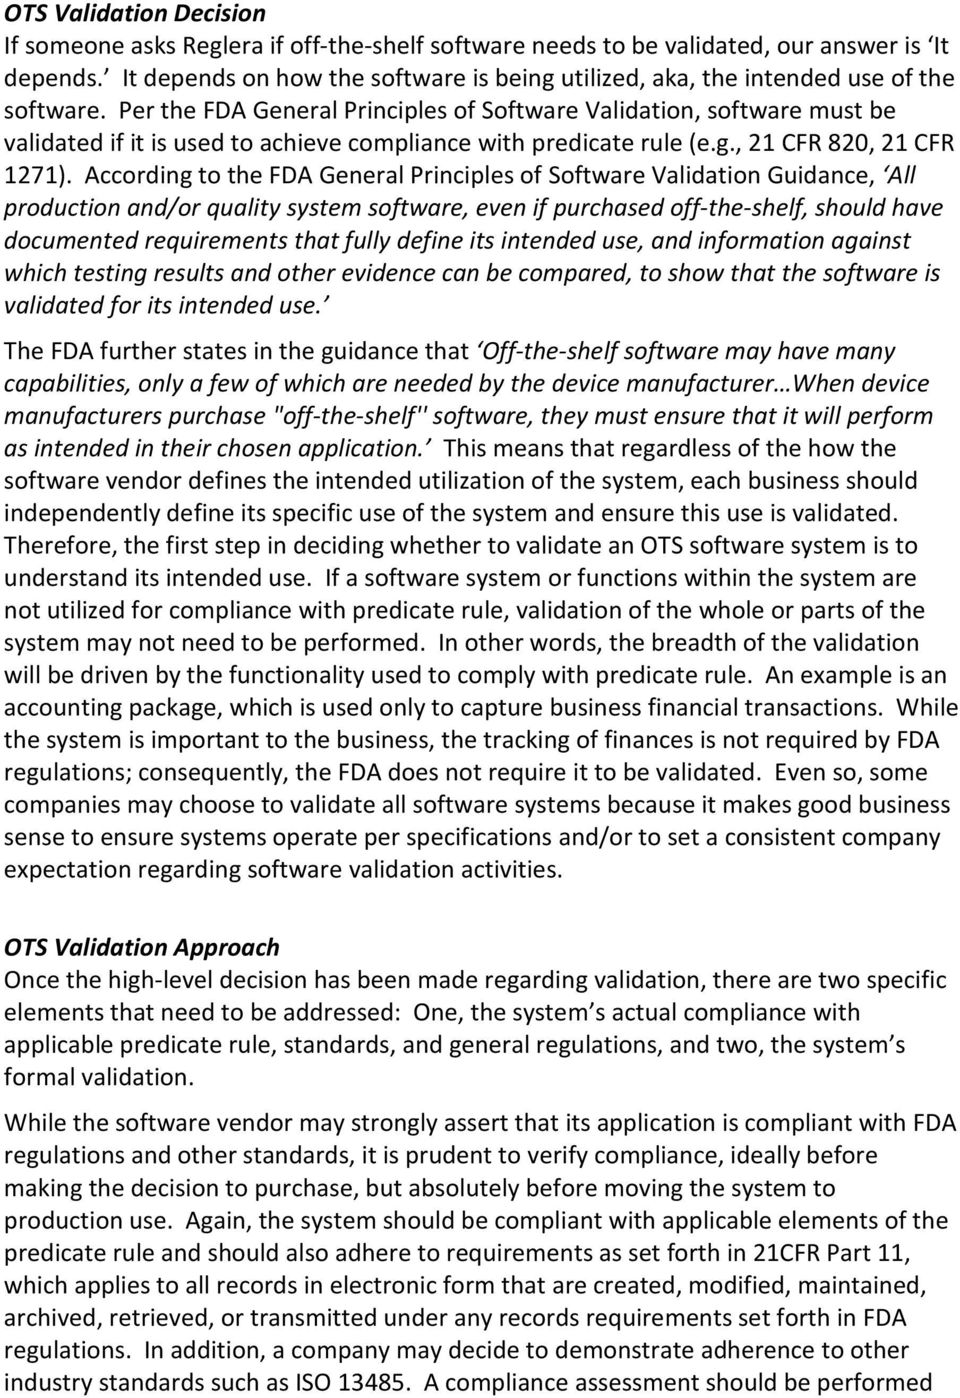 Per the FDA General Principles of Software Validation, software must be validated if it is used to achieve compliance with predicate rule (e.g., 21 CFR 820, 21 CFR 1271).